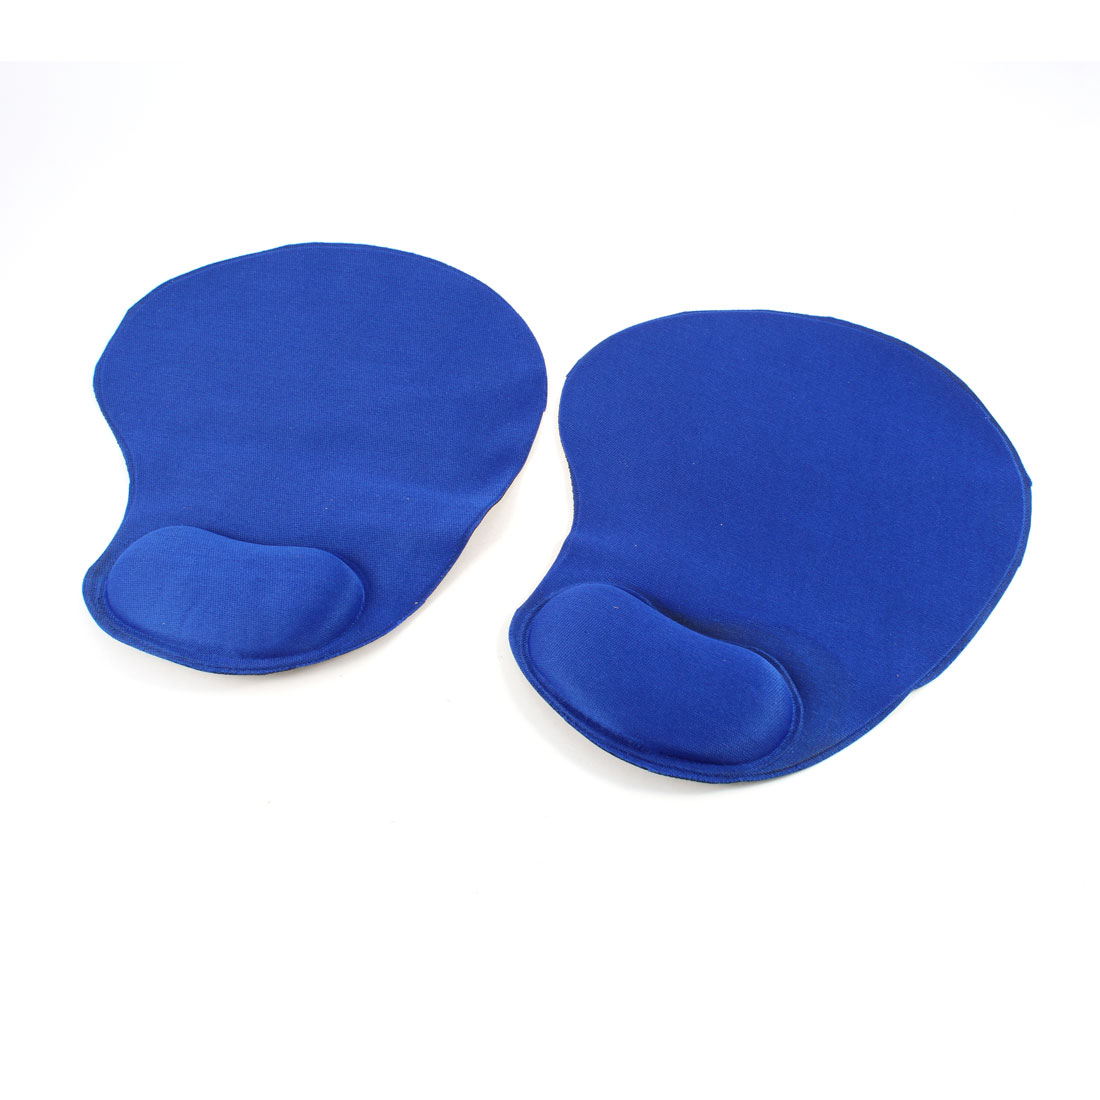 Household PC Laptop Blue Mouse Pad Wrist Rest Support 2 Pcs